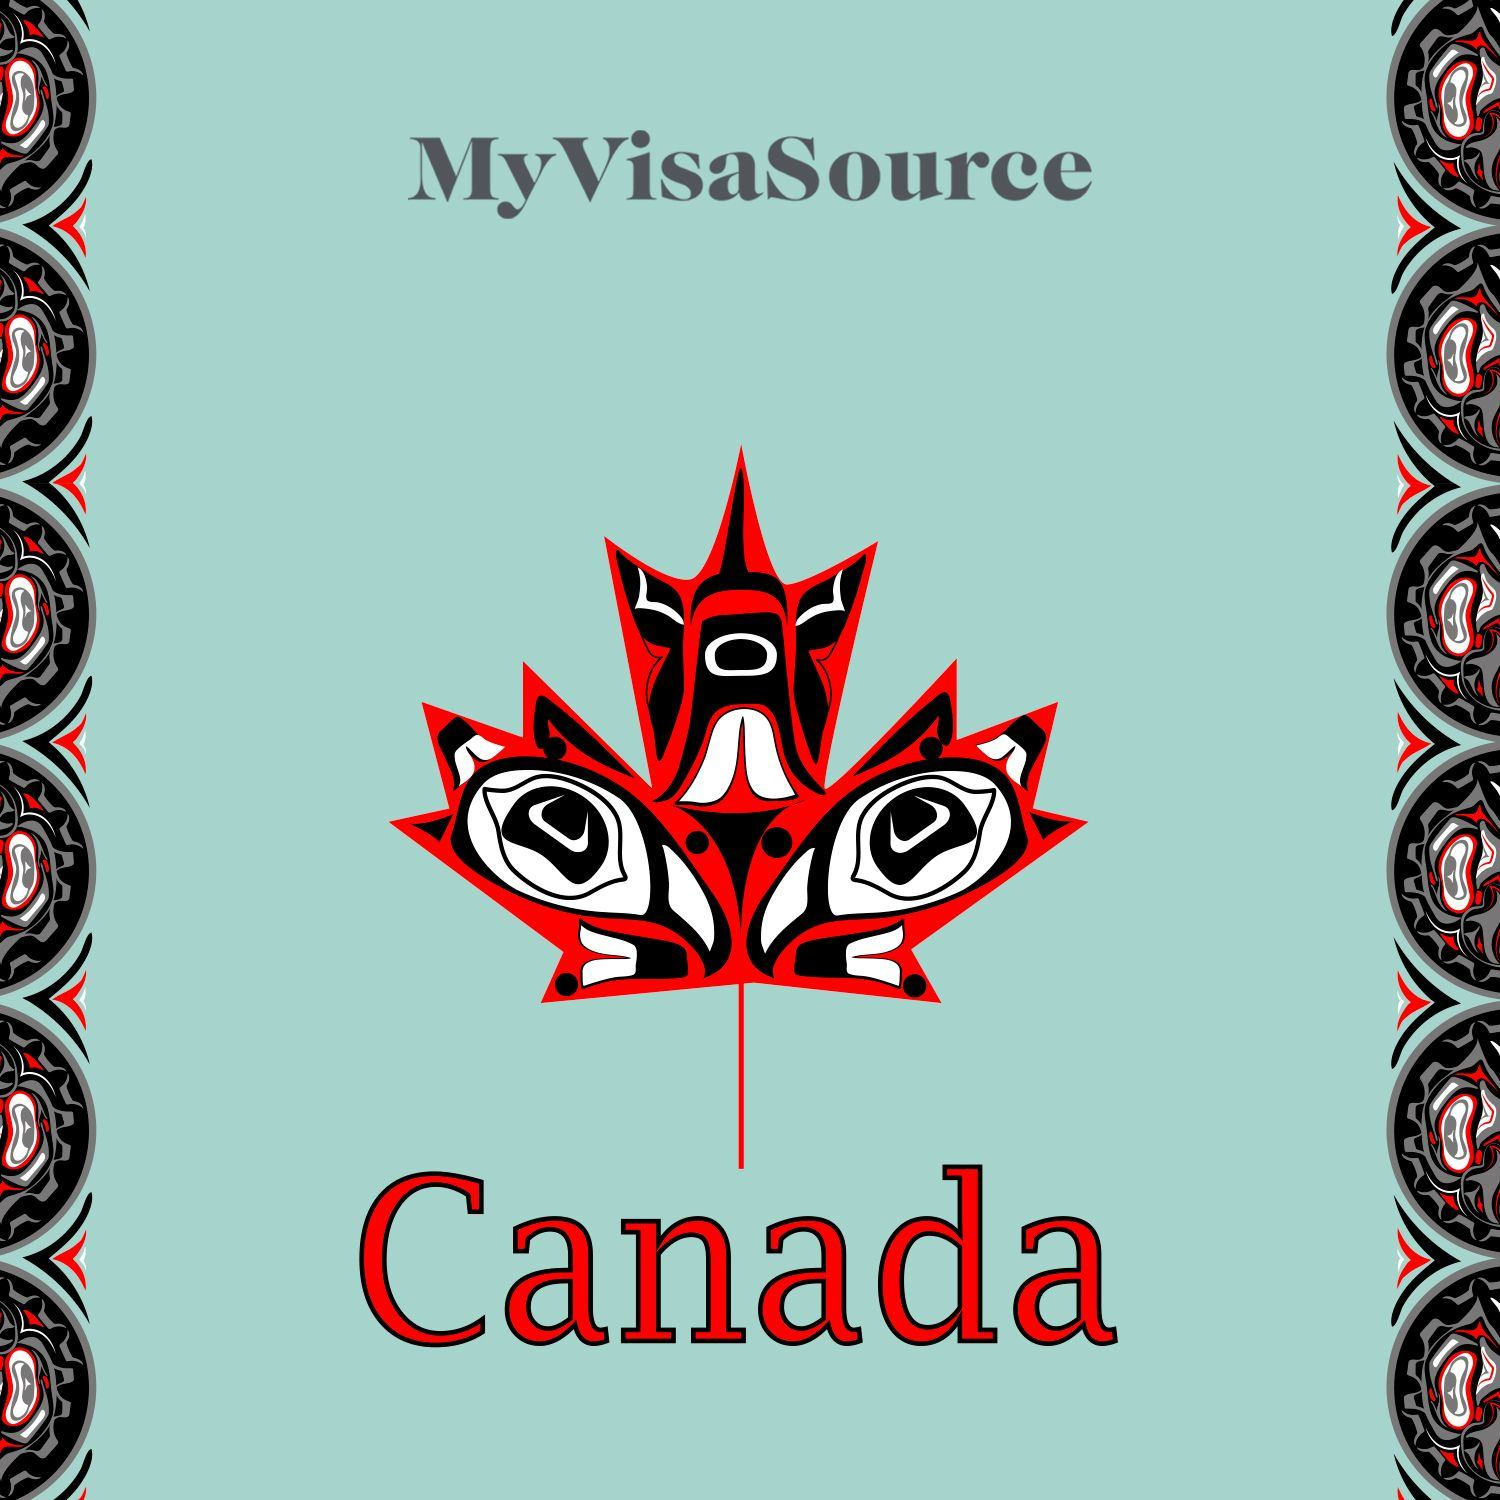 canadian flag design with first nations inuit design my visa source